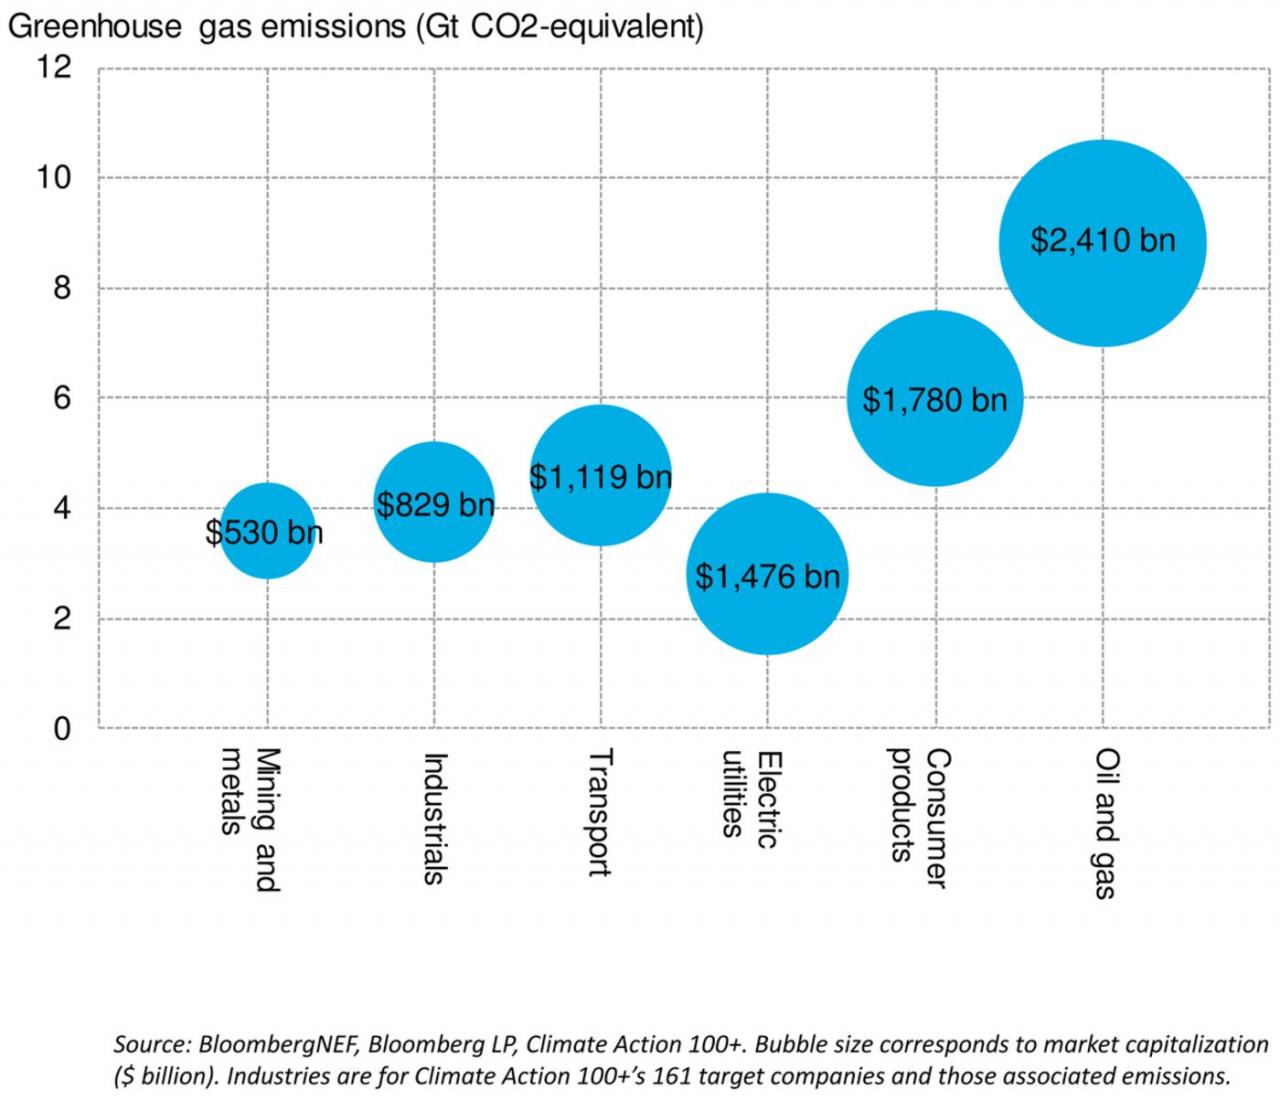 Climate Action 100+ target industries by emissions and market cap